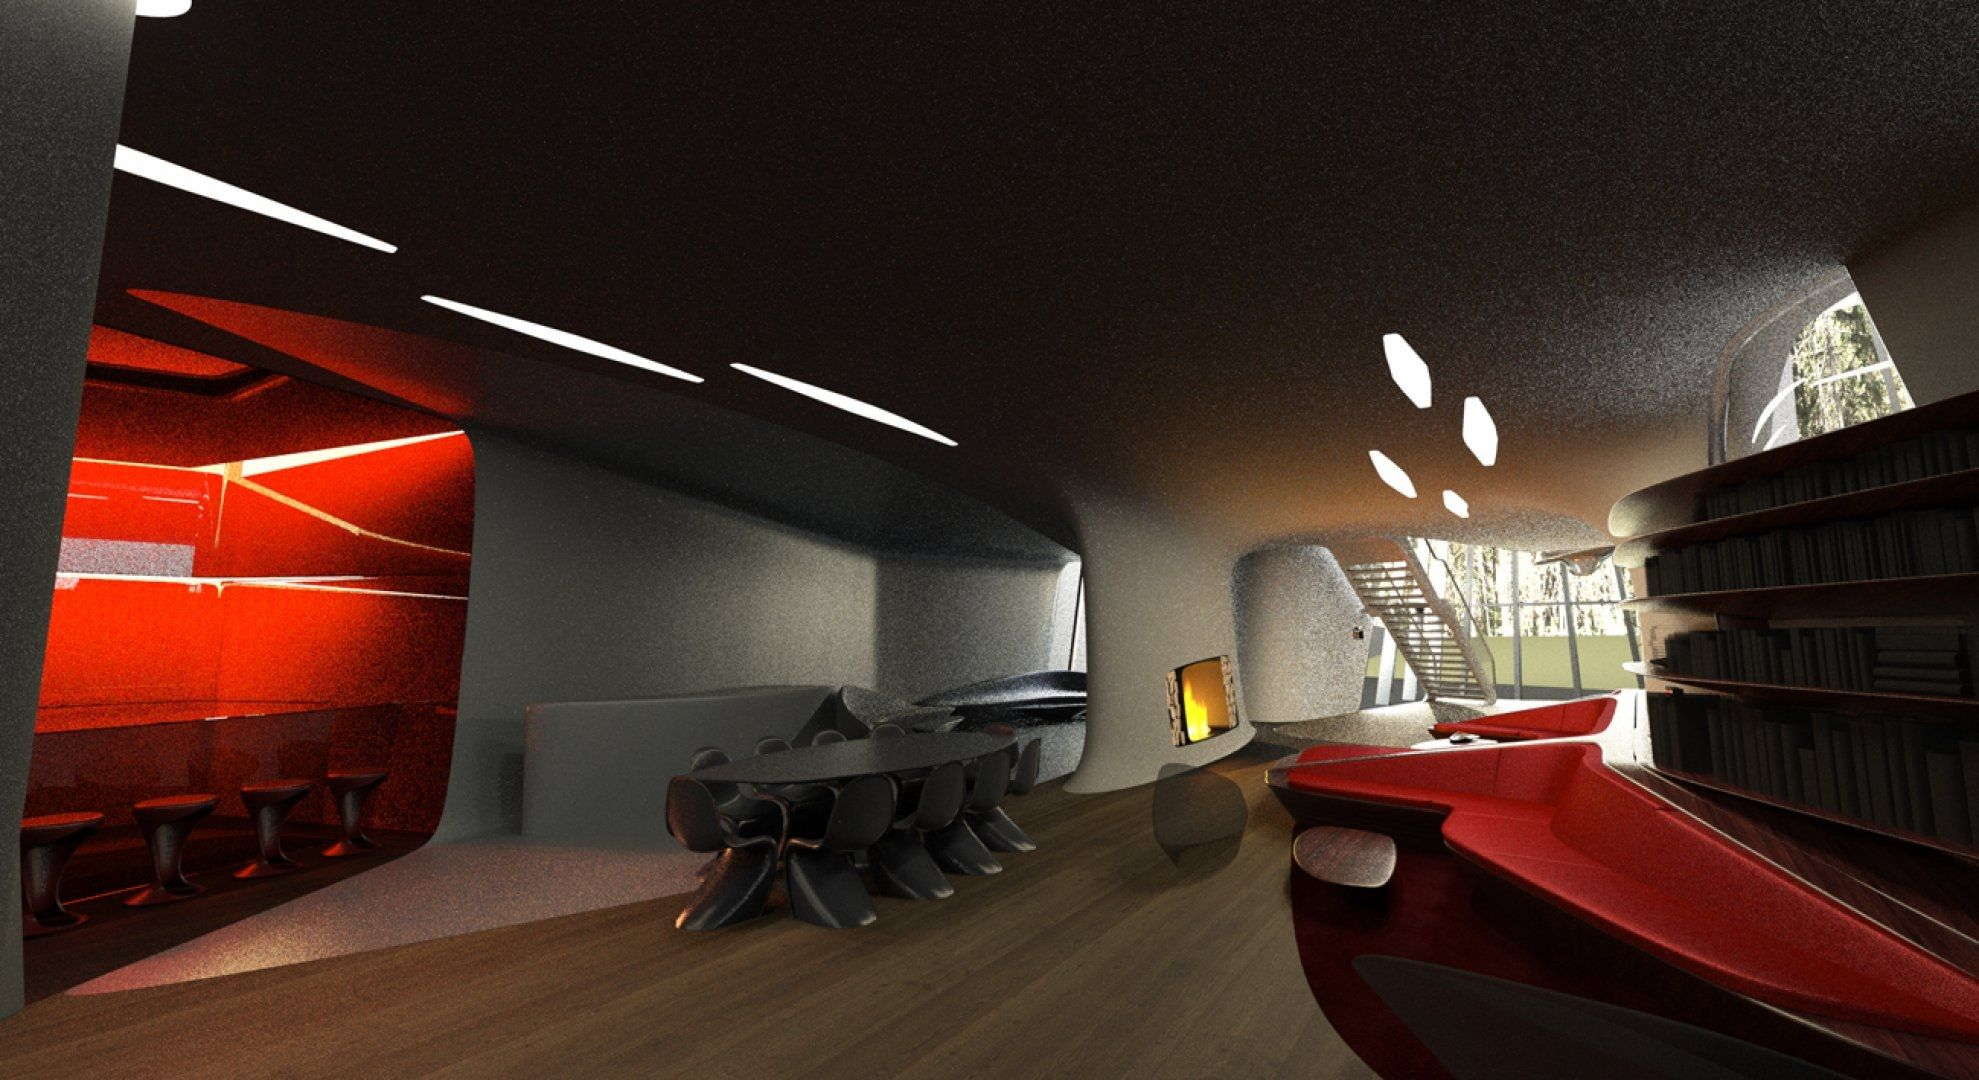 Sophisticated space age interior | Pop art apartment interior ...